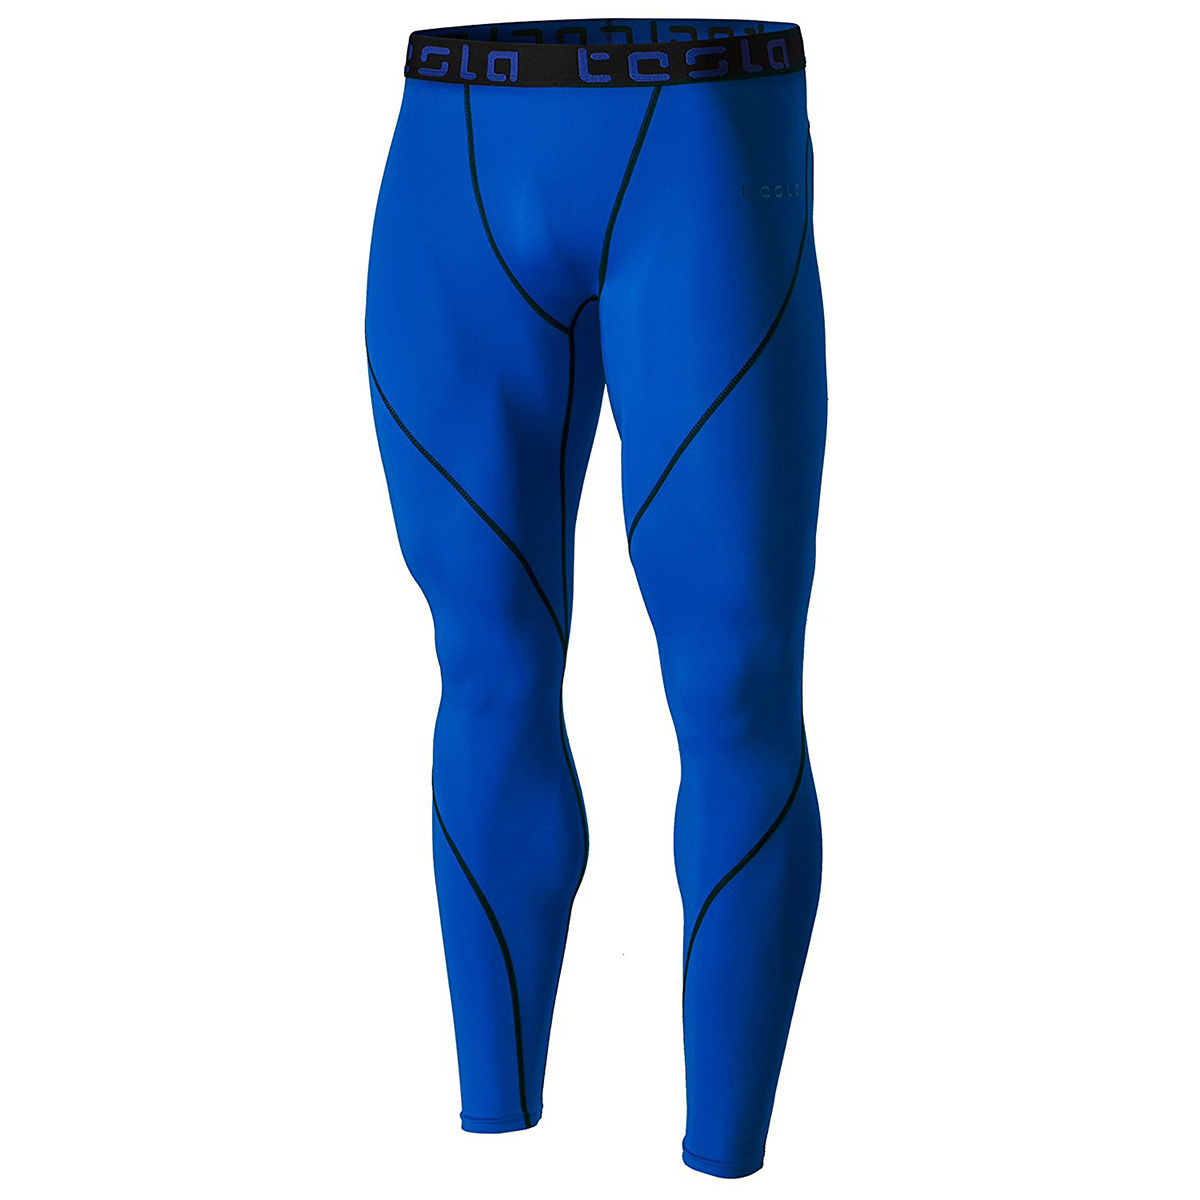 aea8709efc028 Woodland Camo/Olive. TSLA Tesla MUP19 Cool Dry Baselayer Compression Pants.  Black/Black. Black/Red. Blue/Black. Charcoal/Black. Green/Dark Gray